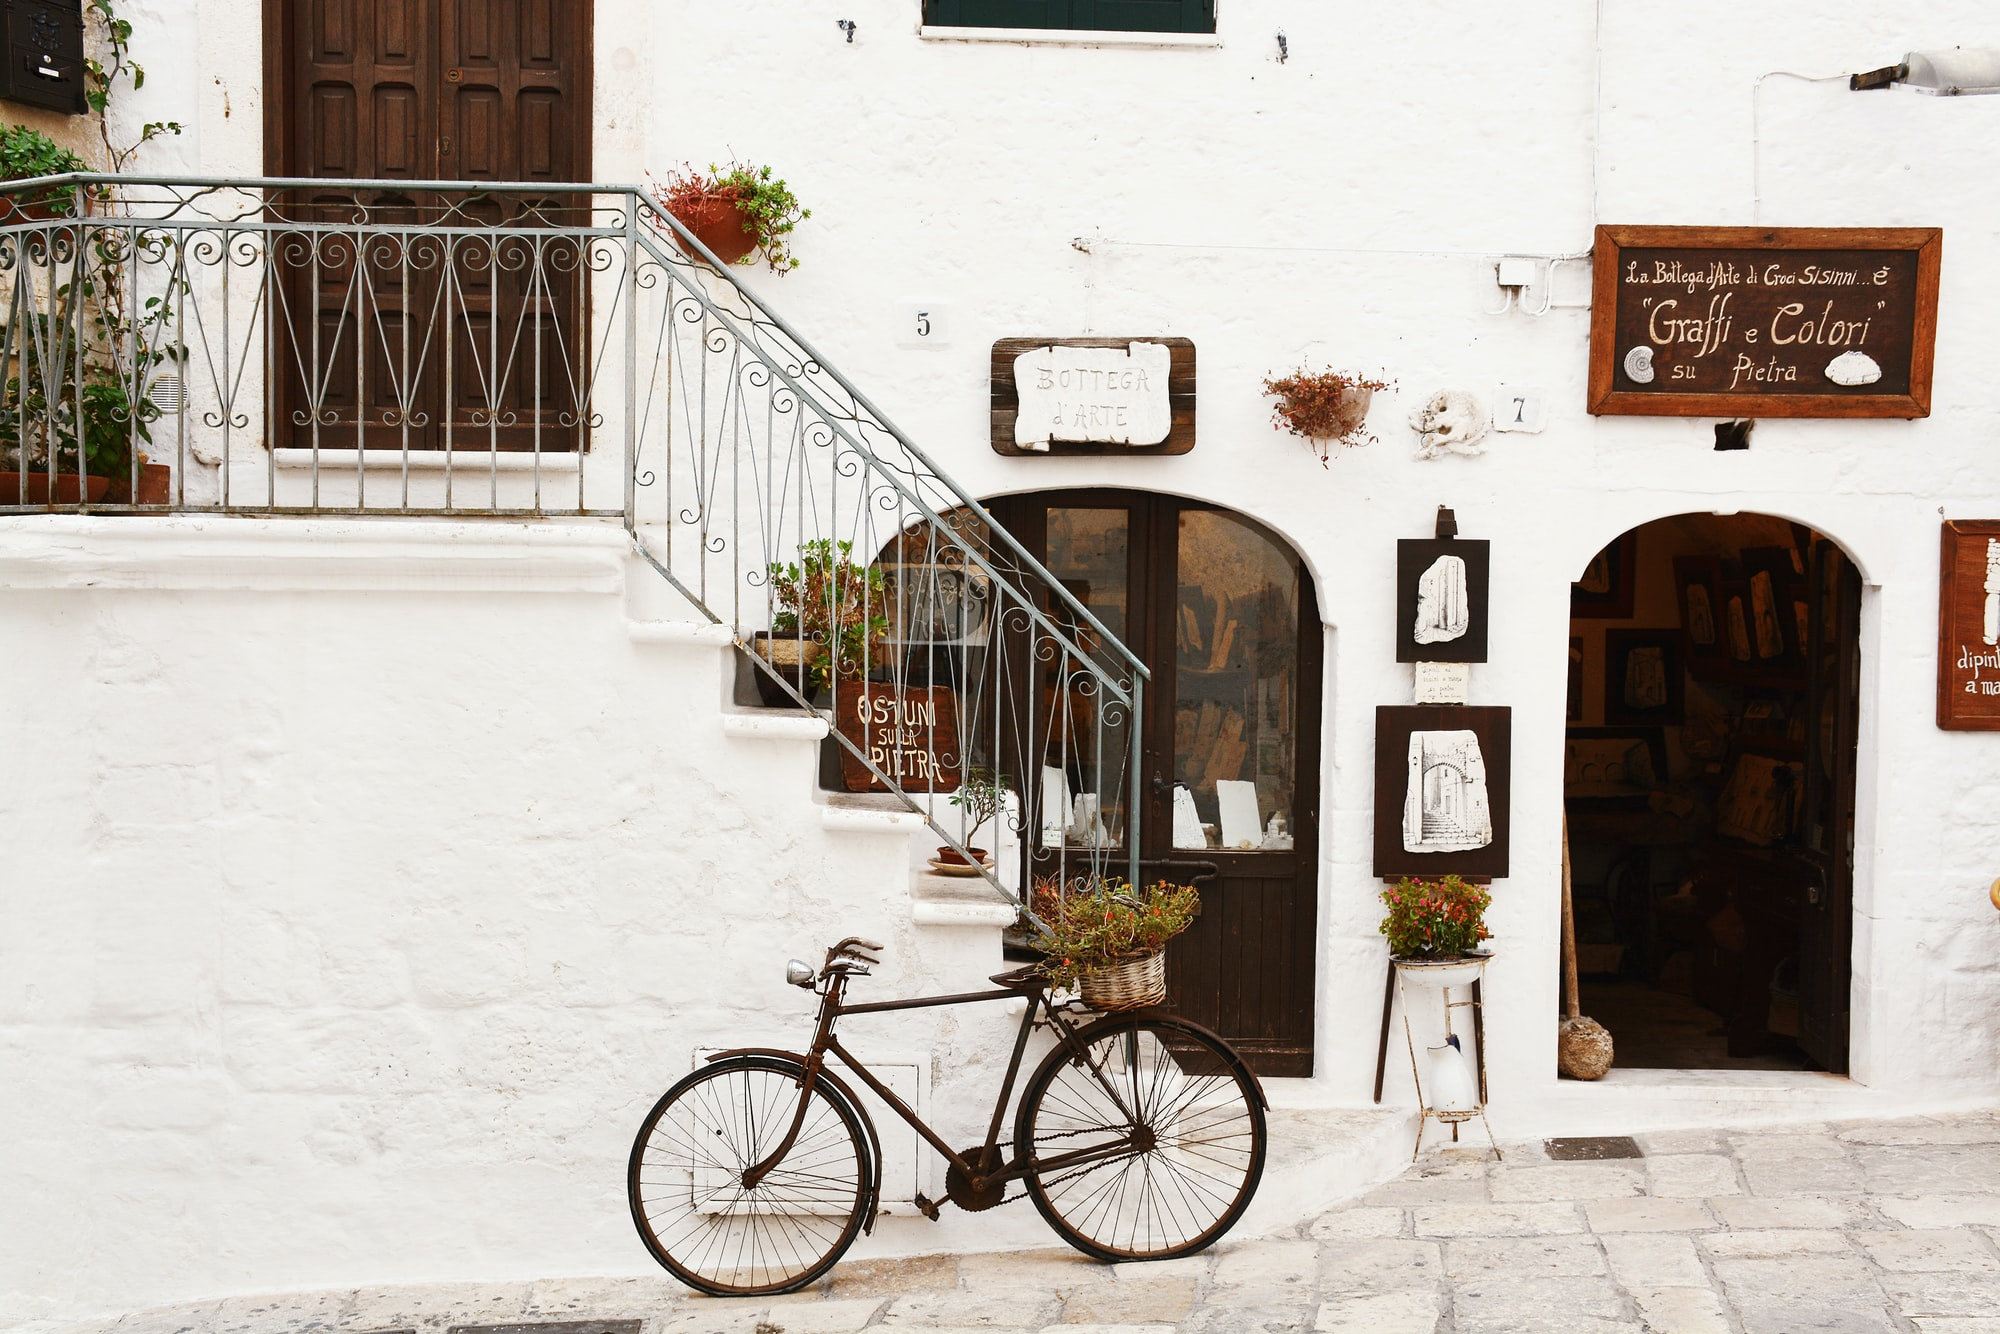 Vintage bike in front of restaurant in Italy